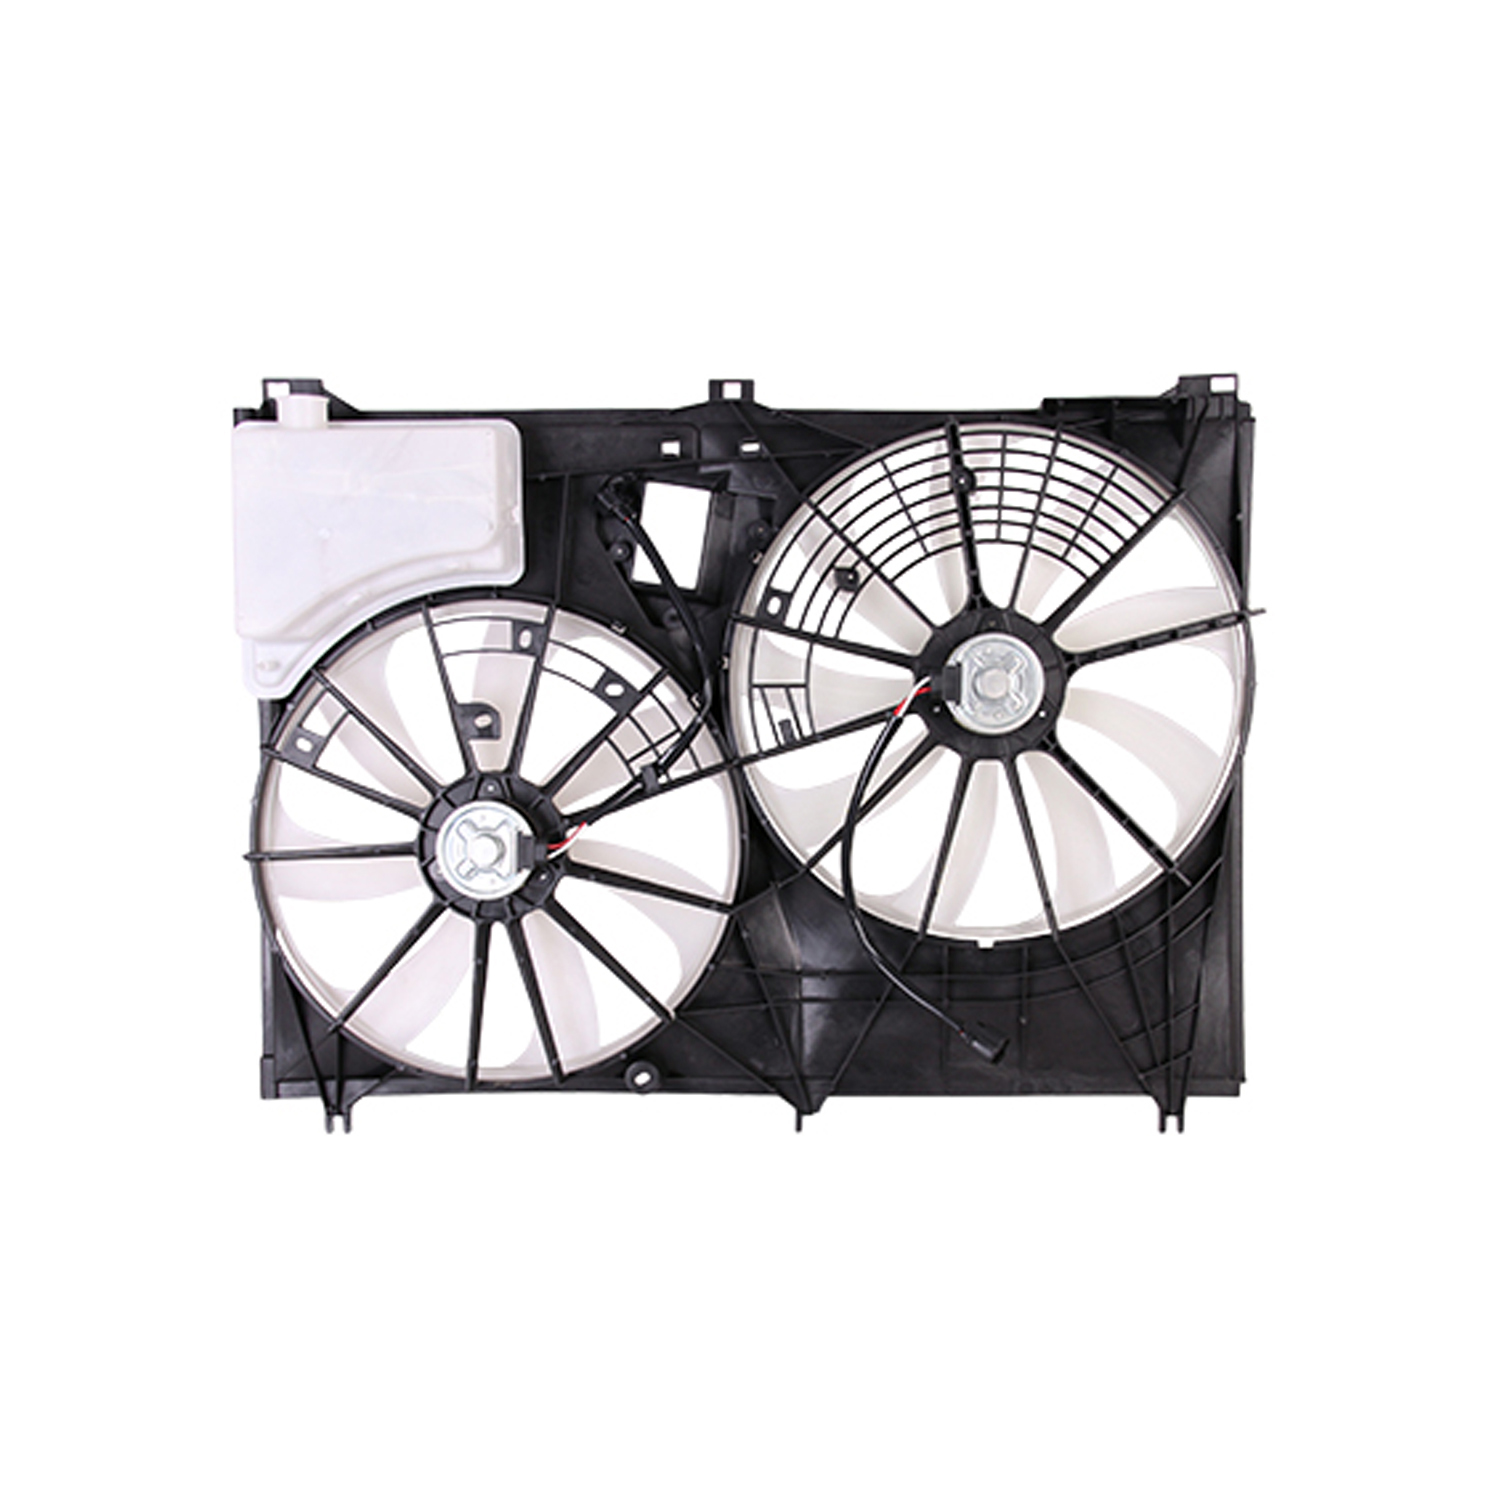 CPP Engine Cooling Fan Assembly TO3115187 for 14-16 Toyota Highlander